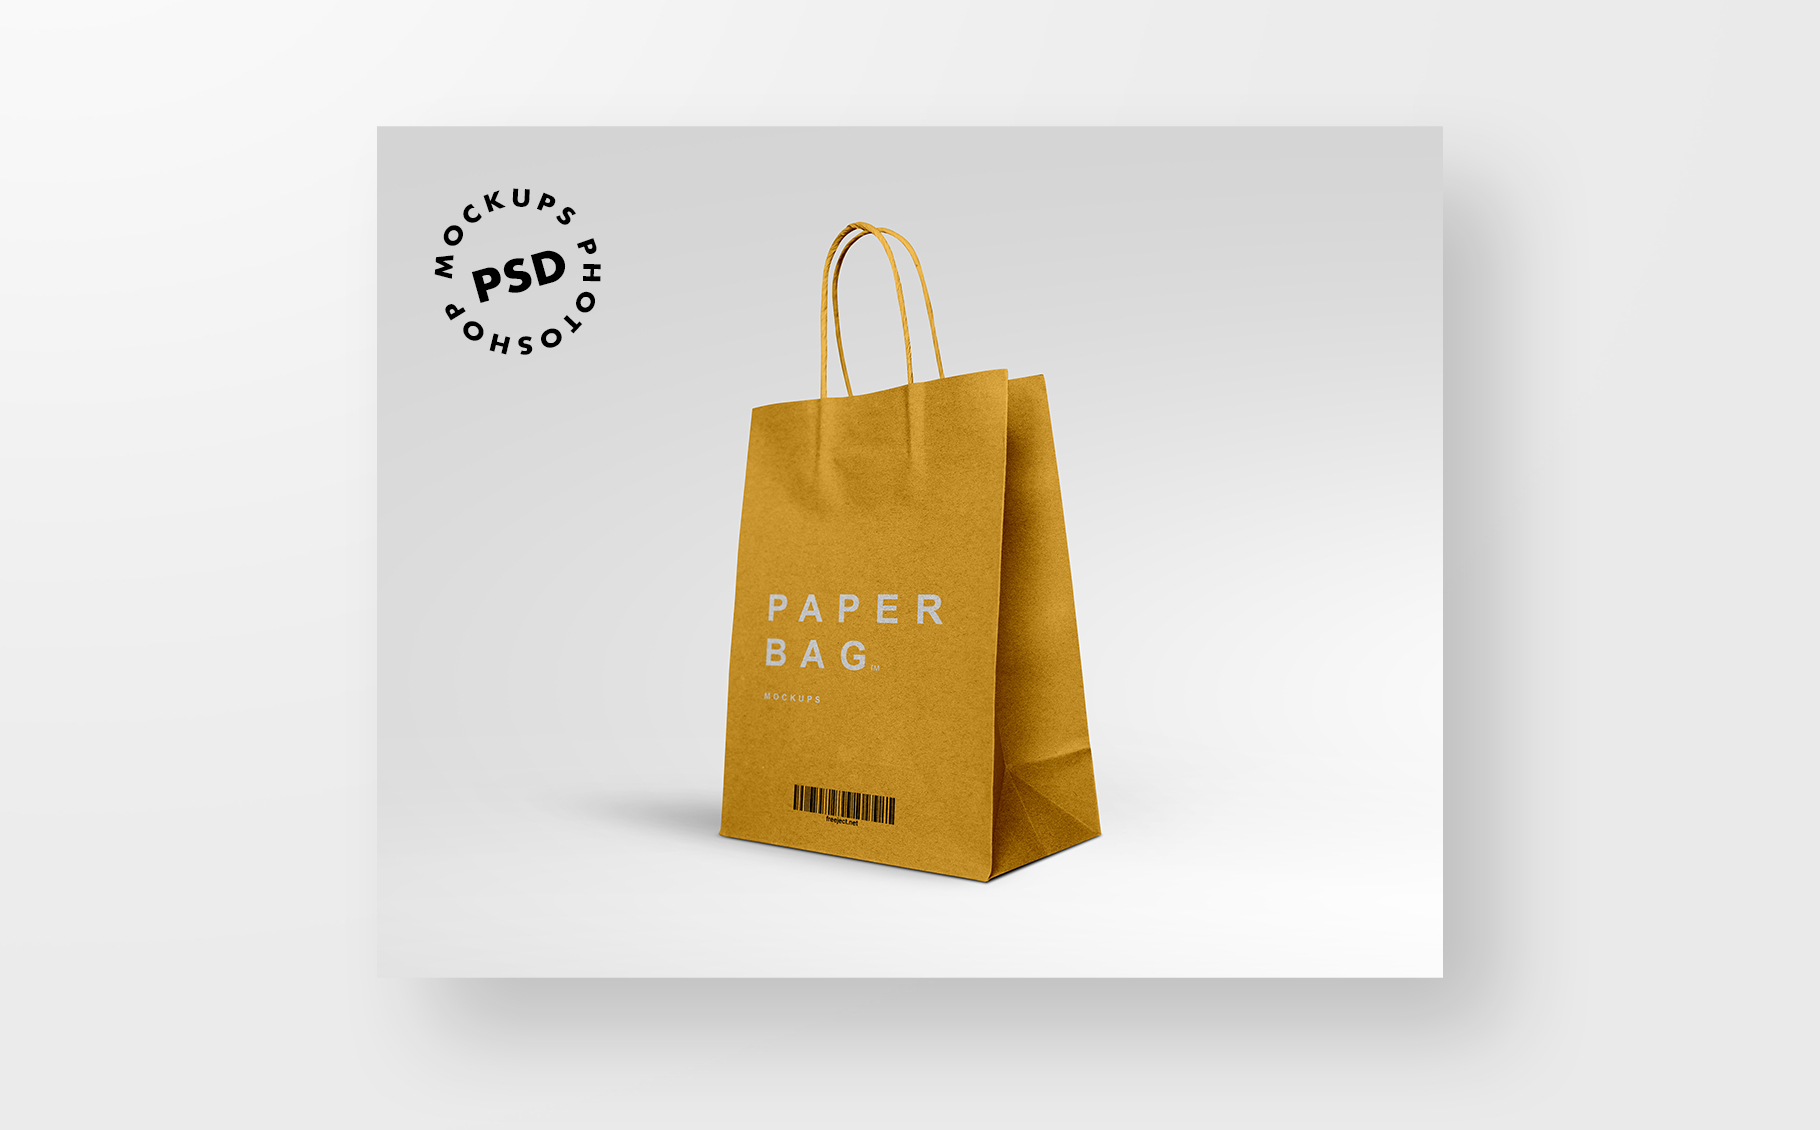 free jute bag mockup (psd) simply a jute bag mockup graphic built based on a real image and made available for easy customization inside photoshop with smart layers and backgorund color. 2 Paper Bag Mockups Free Download Photoshop Mockups Template Psd File